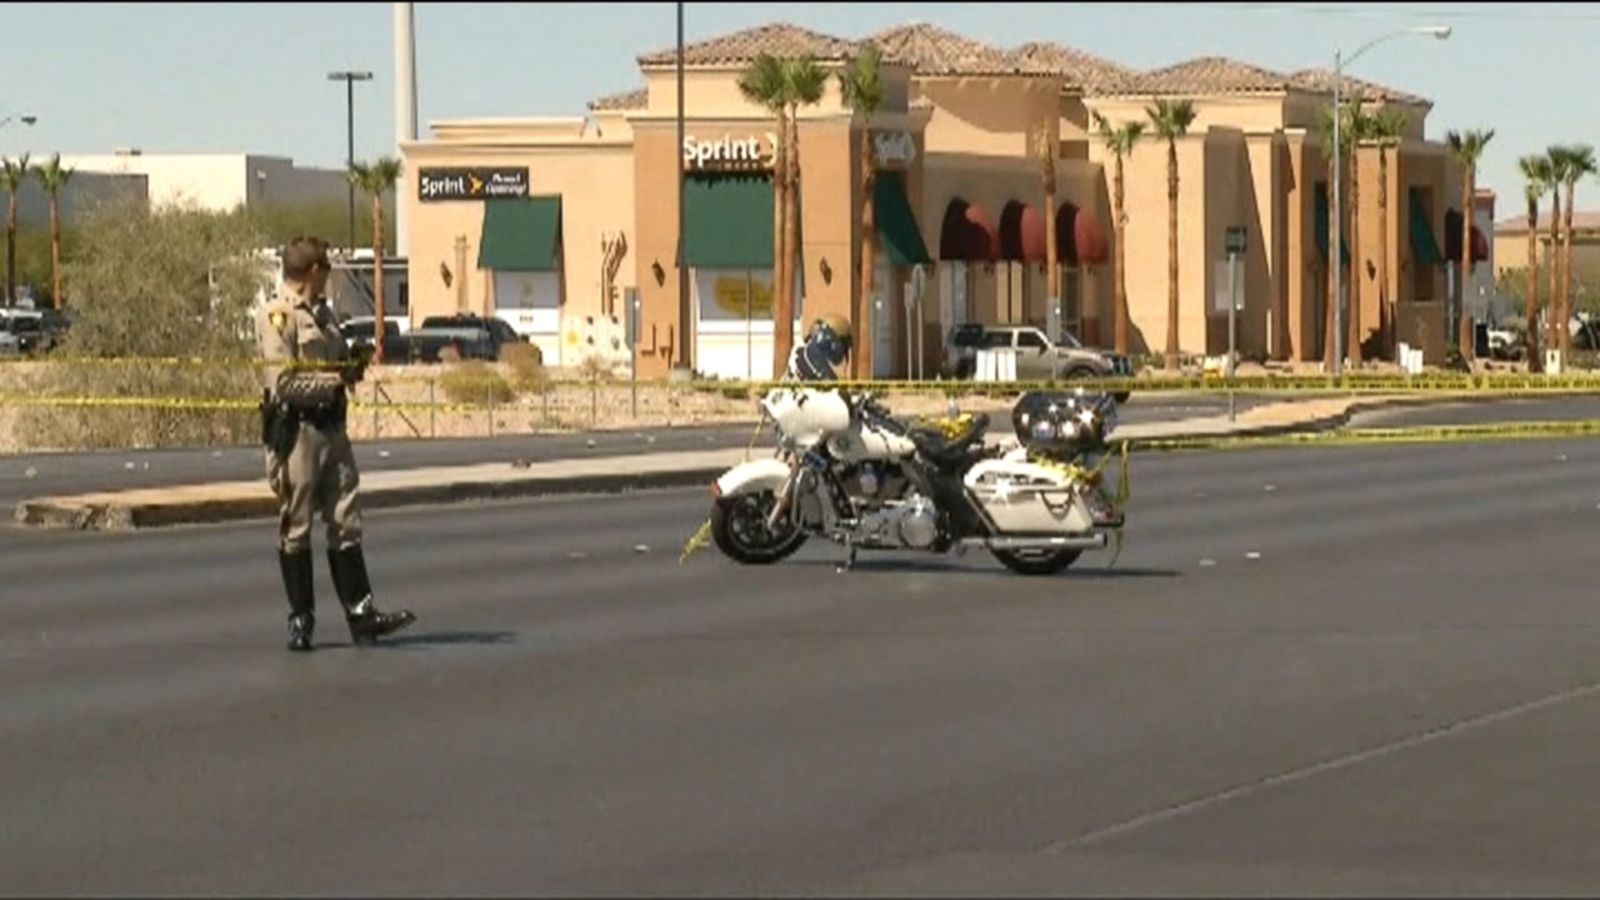 VIDEO: A man shot another man dead Sunday inside a Las Vegas Starbucks and the suspect left along with people being evacuated but was arrested later, police said.